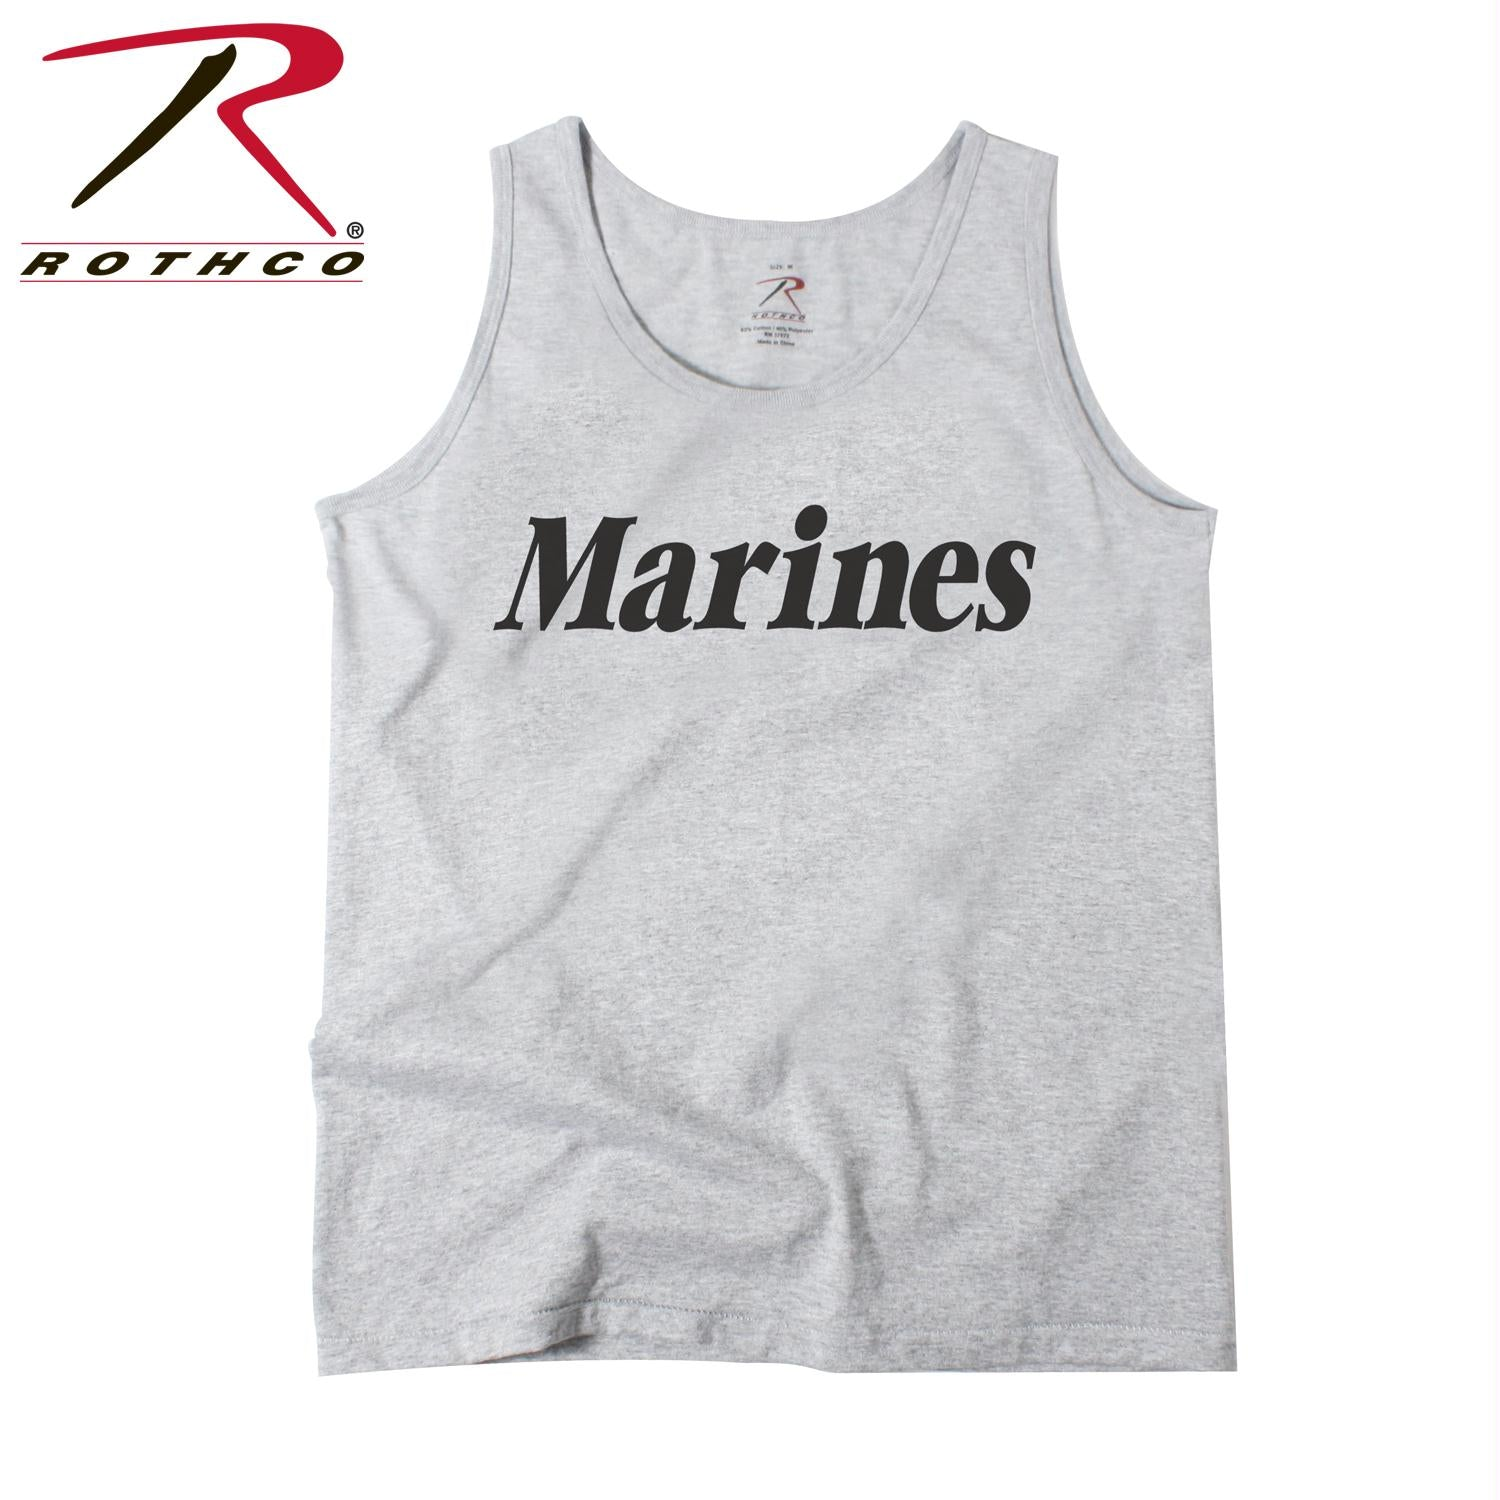 Rothco Military Physical Training Tank Top - Marines / 2XL